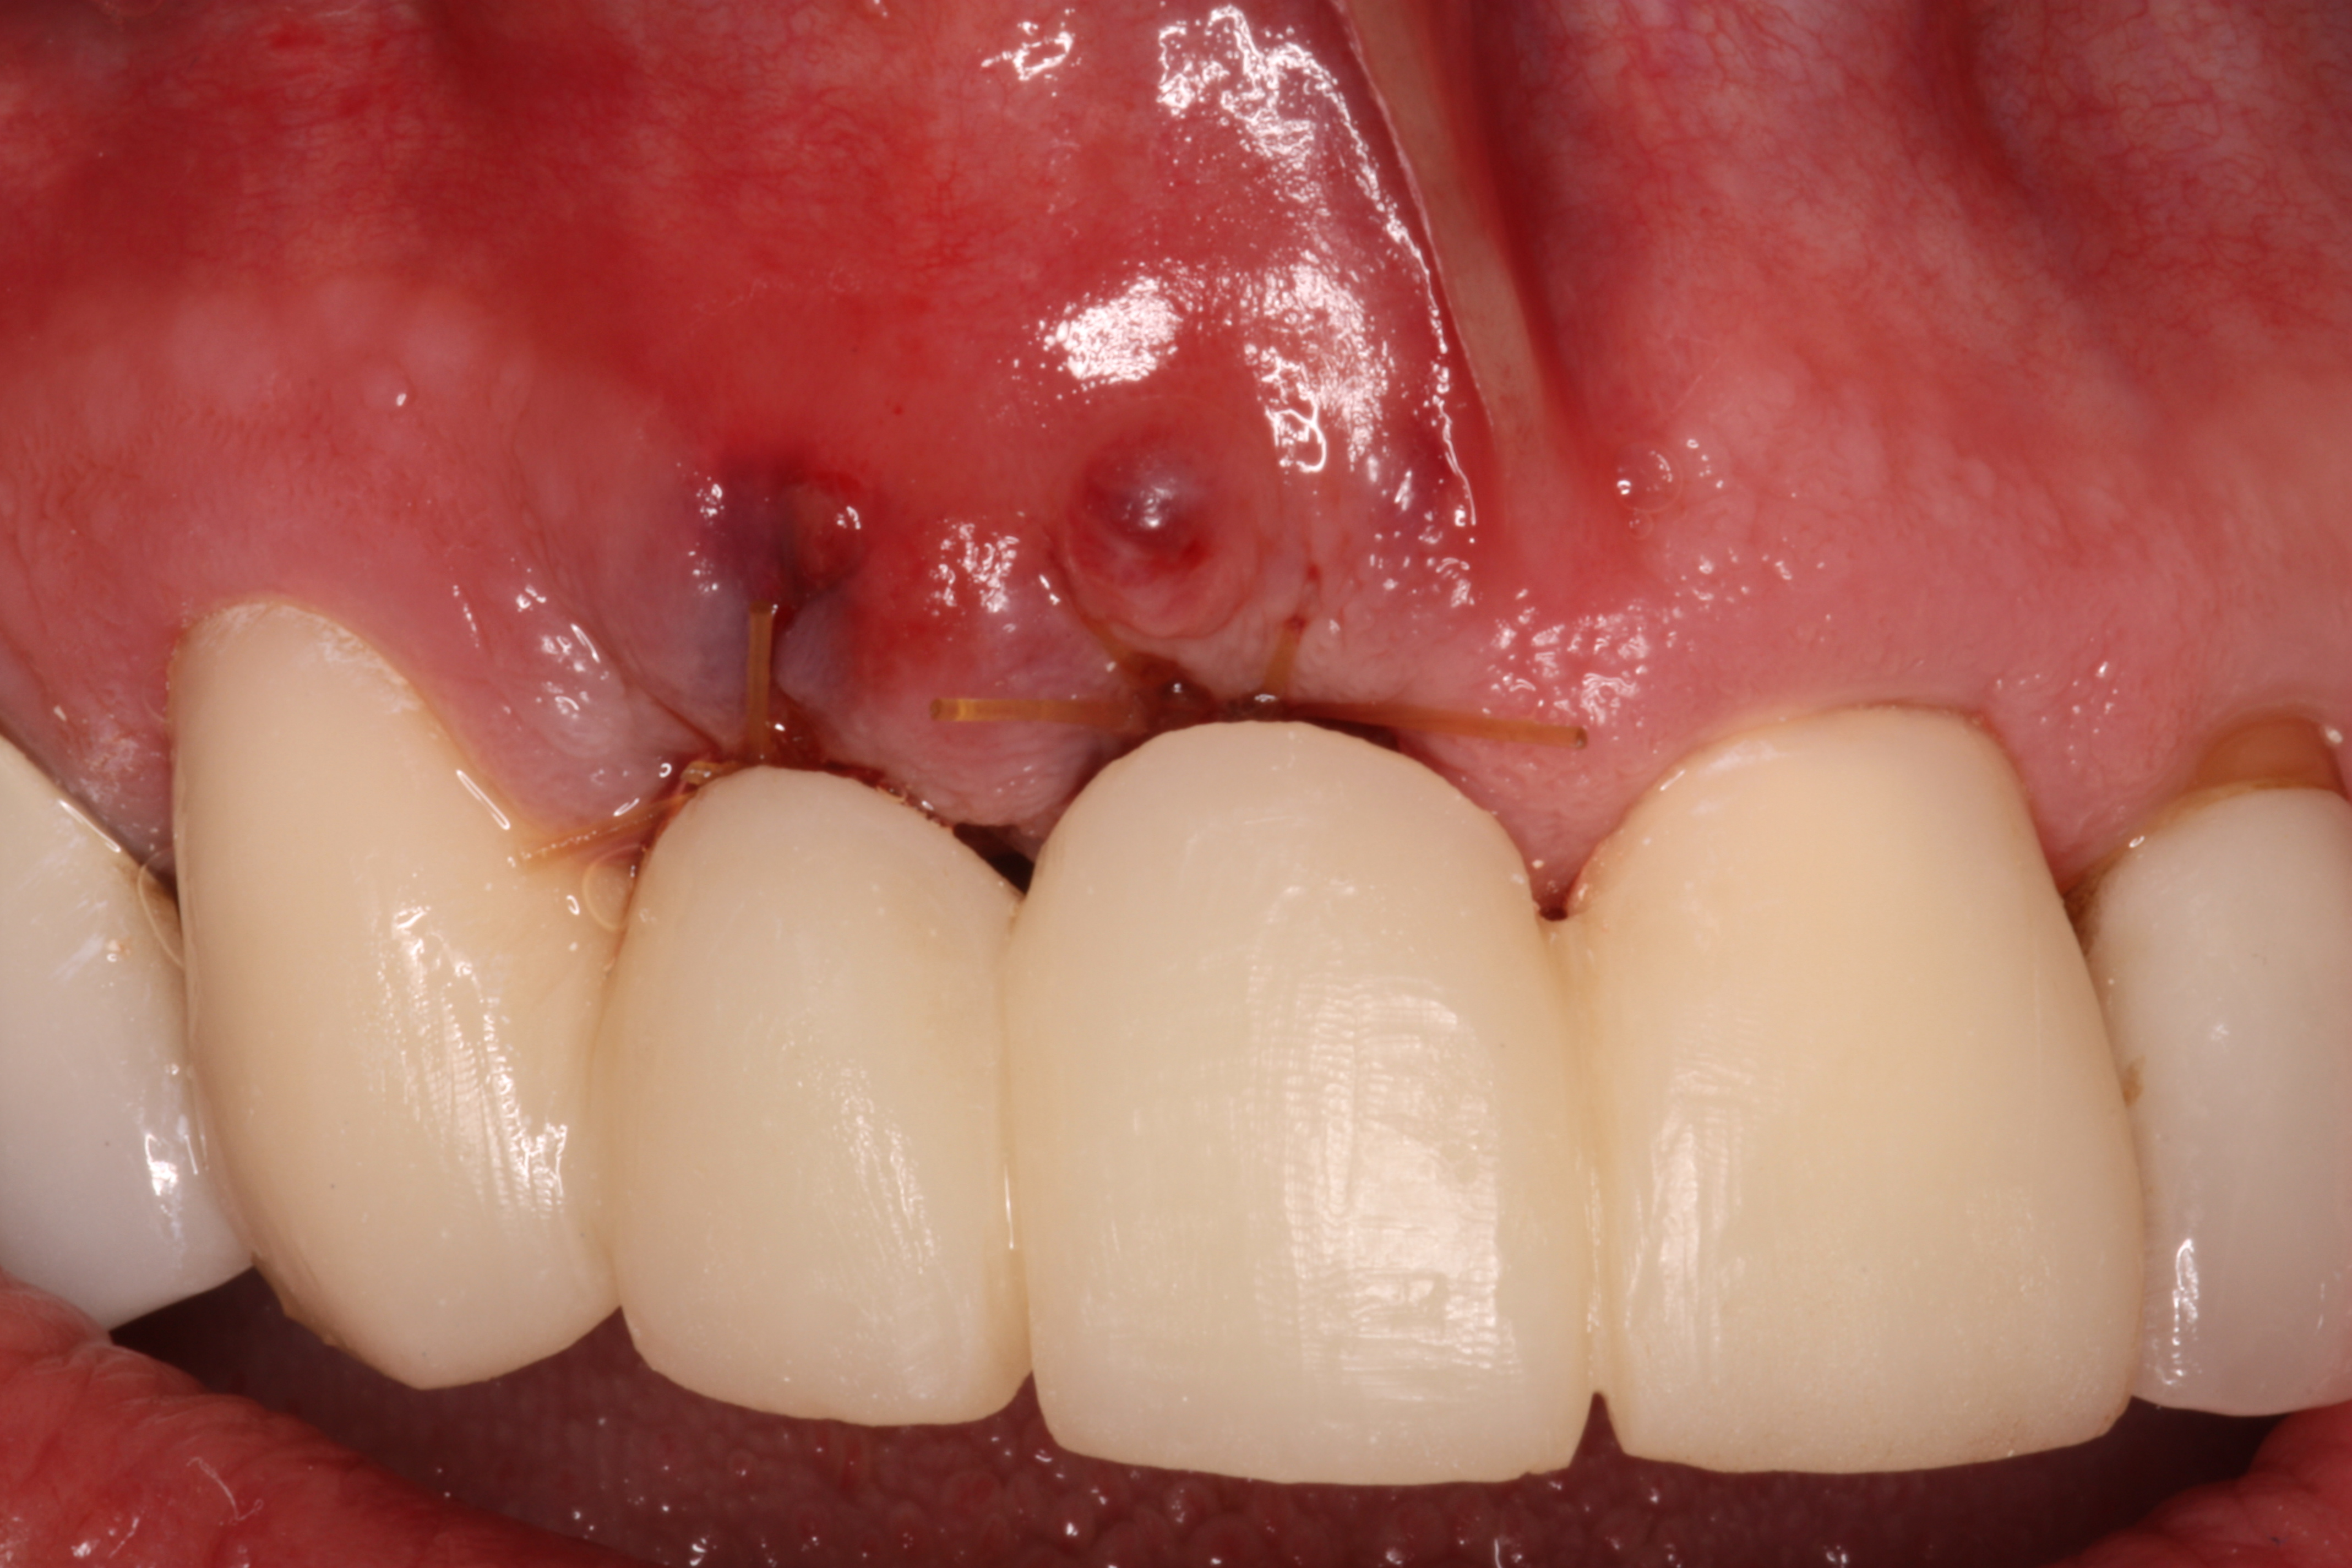 Front View-Bone Graft & Dental Implants - Ryan Lanman DDS, MSD